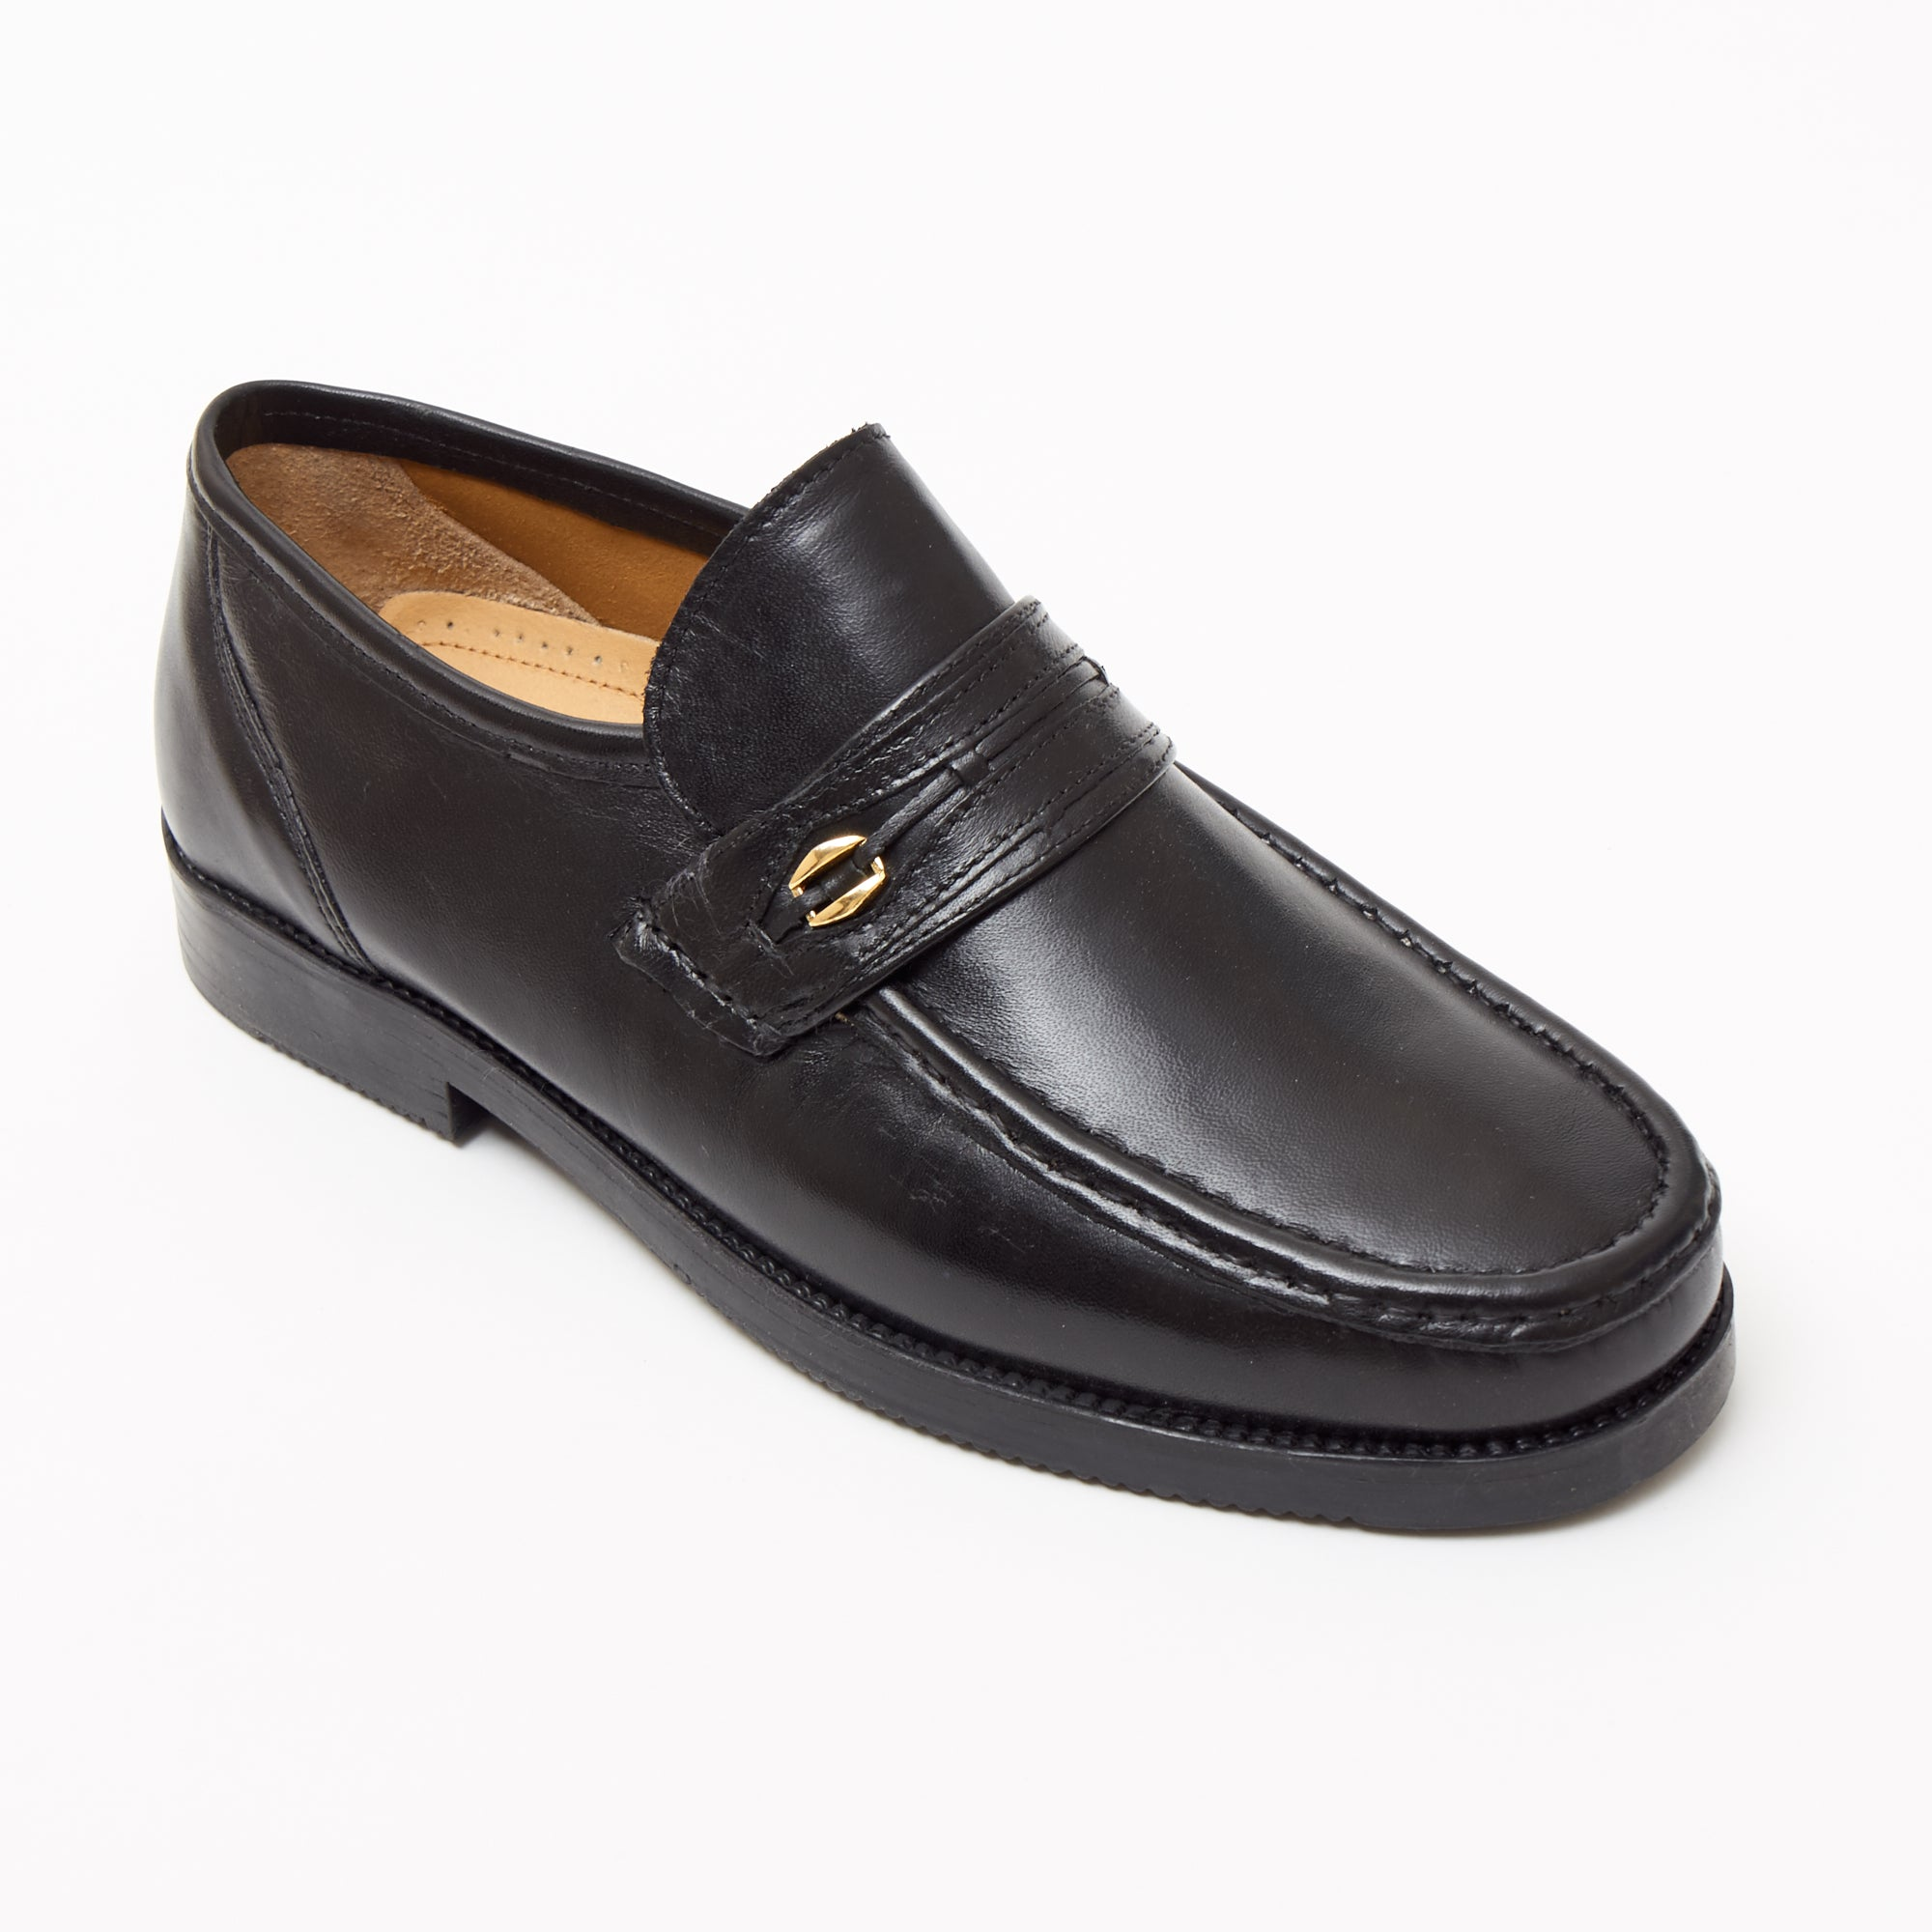 Mens Leather Casual Shoes - 2812_Black Sheep Napa